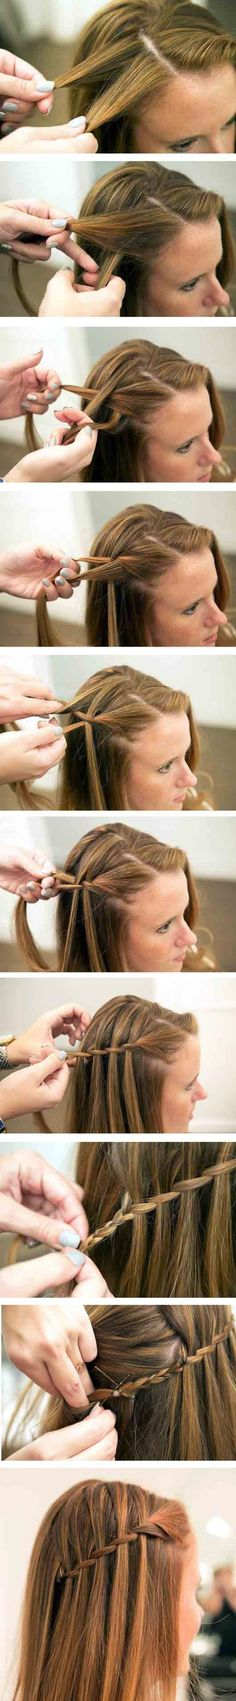 The waterfall braid tutorial step by step i need to learn how to do this i love it so much flechtfrisuren lange haare wasserfall flechtfrisuren haare lange wasserfall Waterfall Braid Tutorial, Waterfall Braids, Waterfall Hairstyle, Hairstyle Braid, The Waterfall, Updo, Easy Hairstyles, Girl Hairstyles, Step By Step Hairstyles